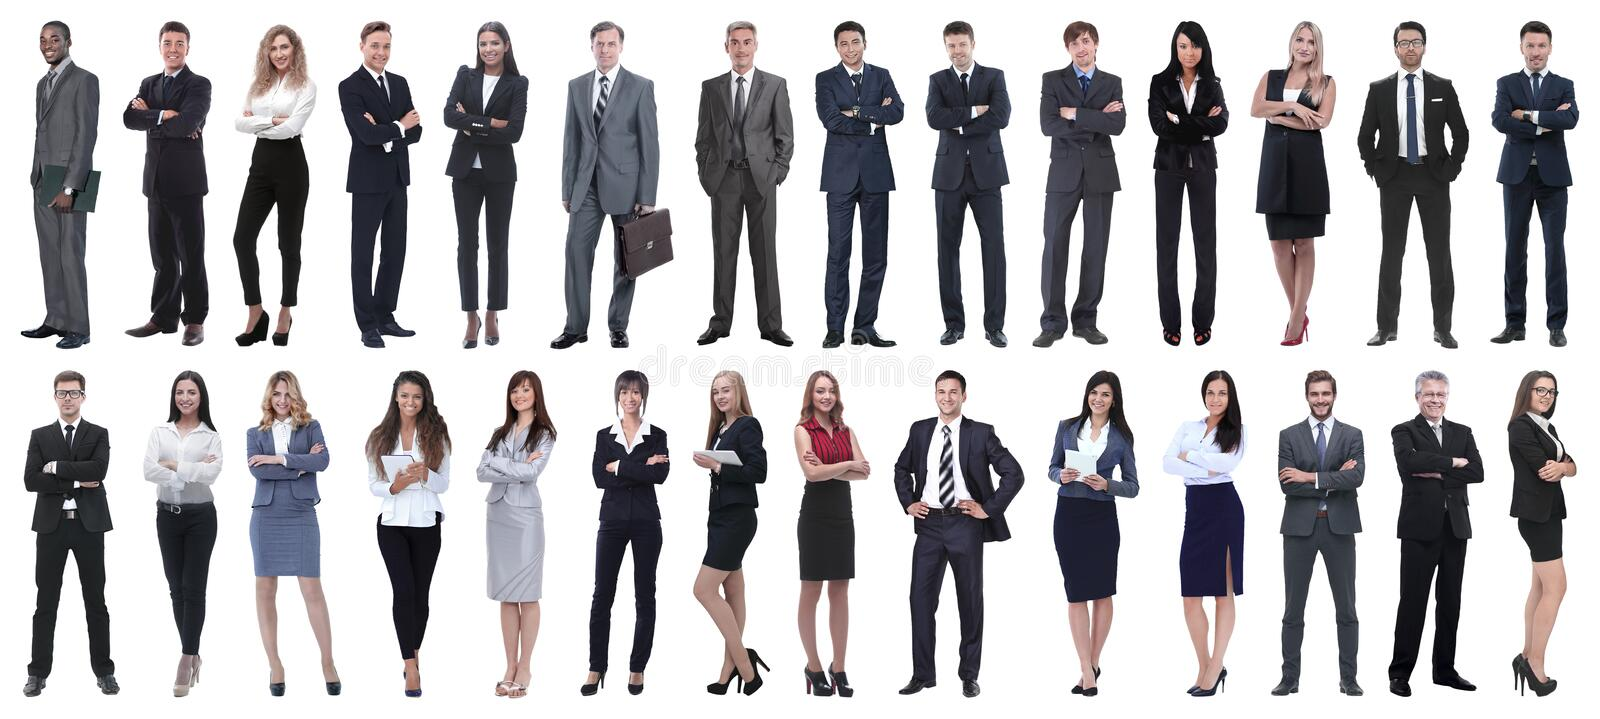 Successful business people isolated on white background royalty free stock image